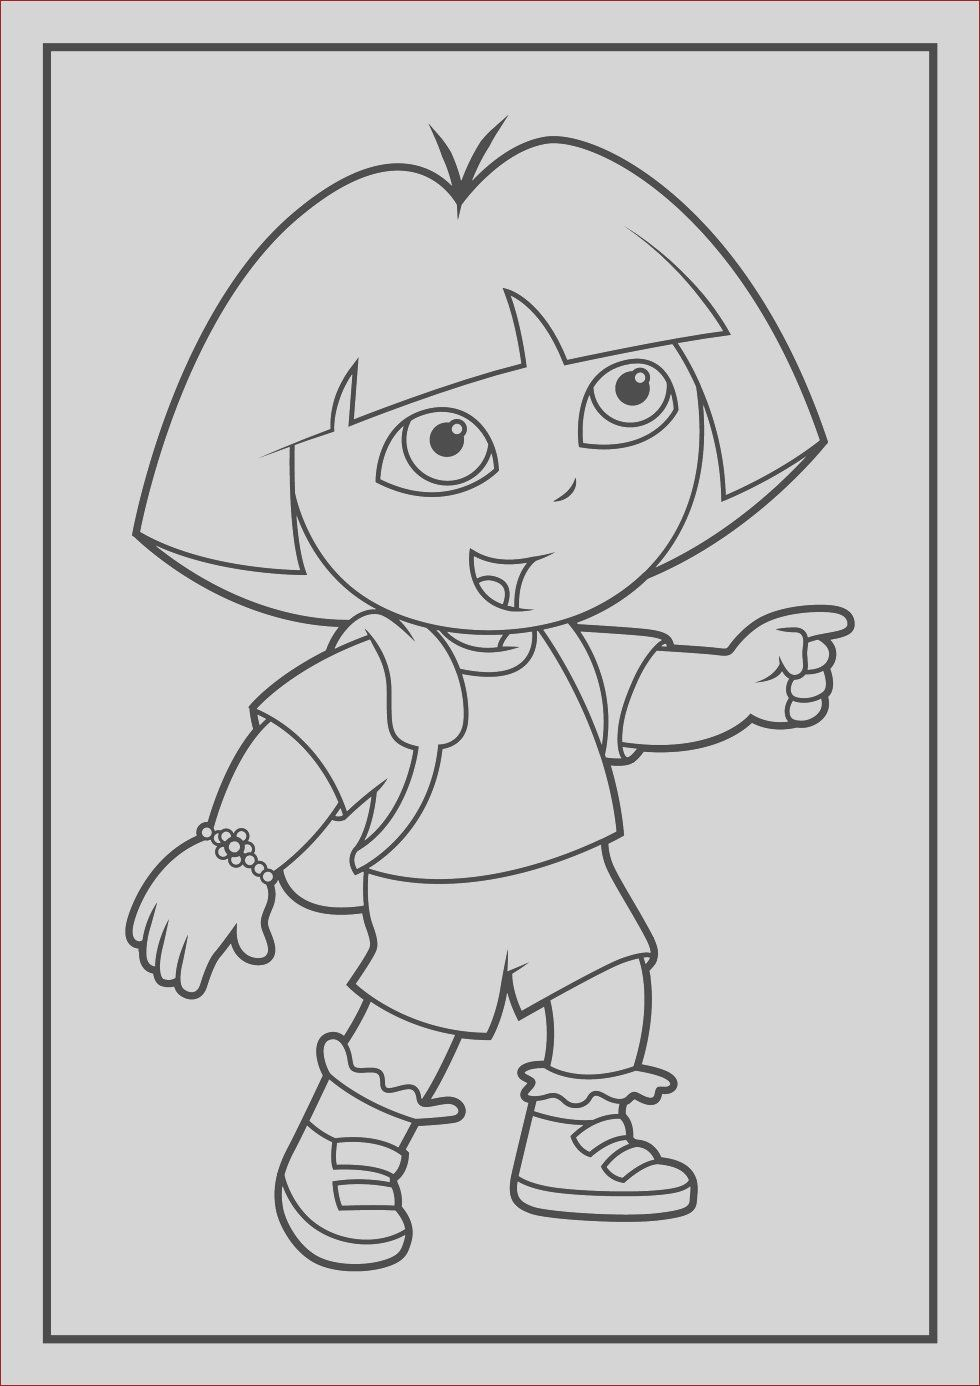 15 Beautiful Photos Of Dora Coloring Games In 2020 Free Coloring Pages Cartoon Coloring Pages Coloring Pages